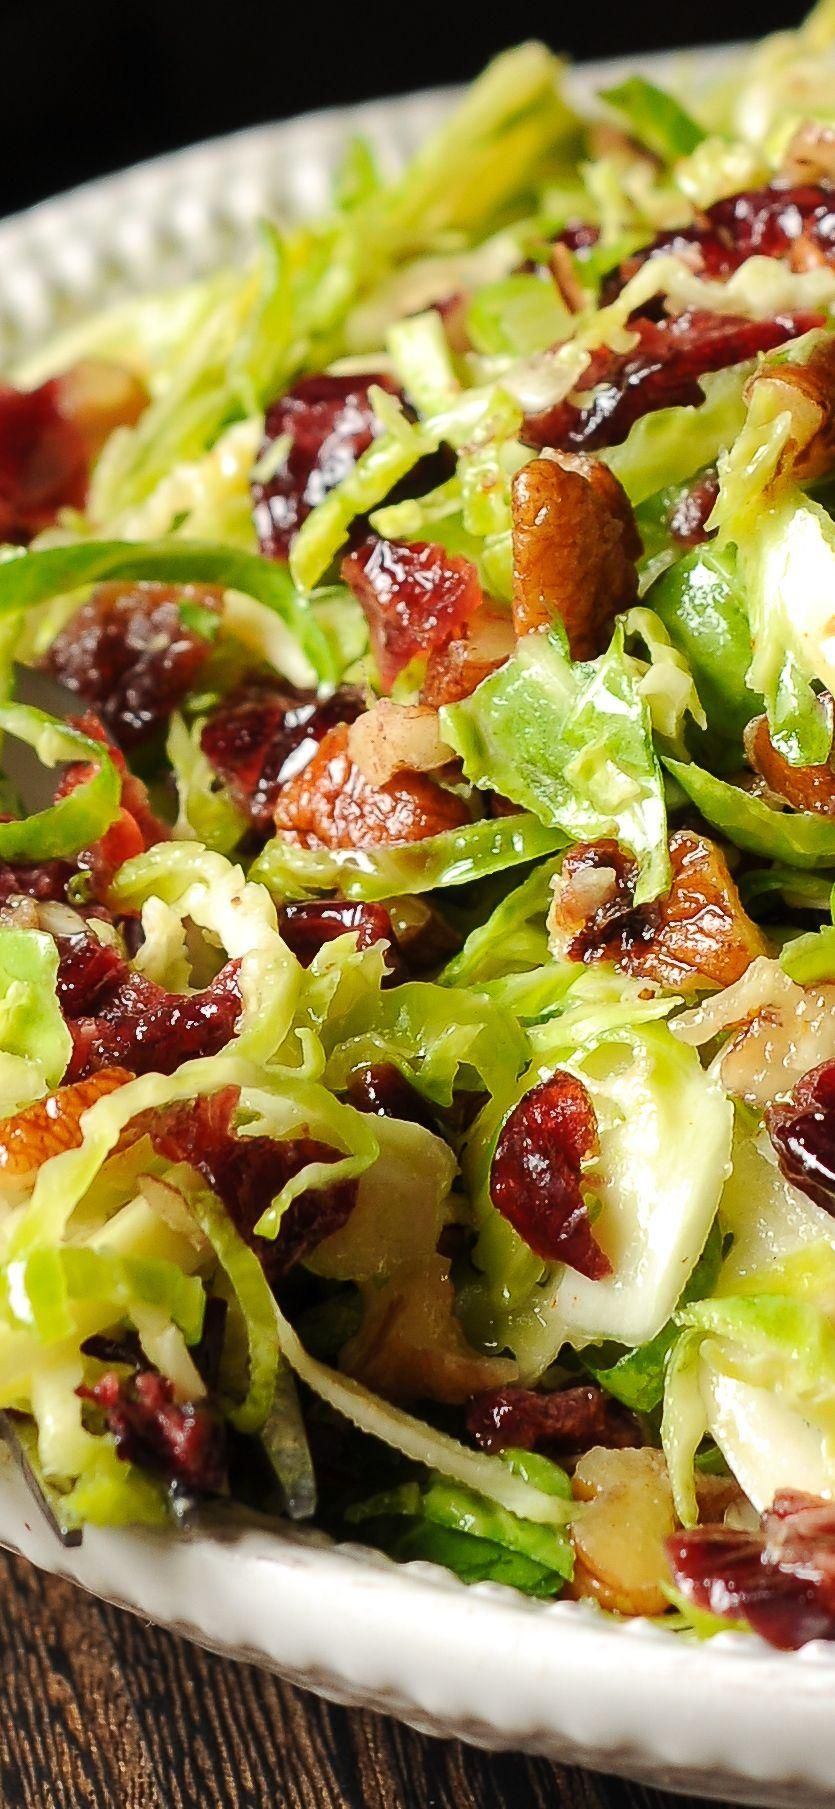 Brussels Sprouts Cranberry Pecan Salad  - Fitness - #Brussels #Cranberry #Fitness #Pecan #Salad #Spr...